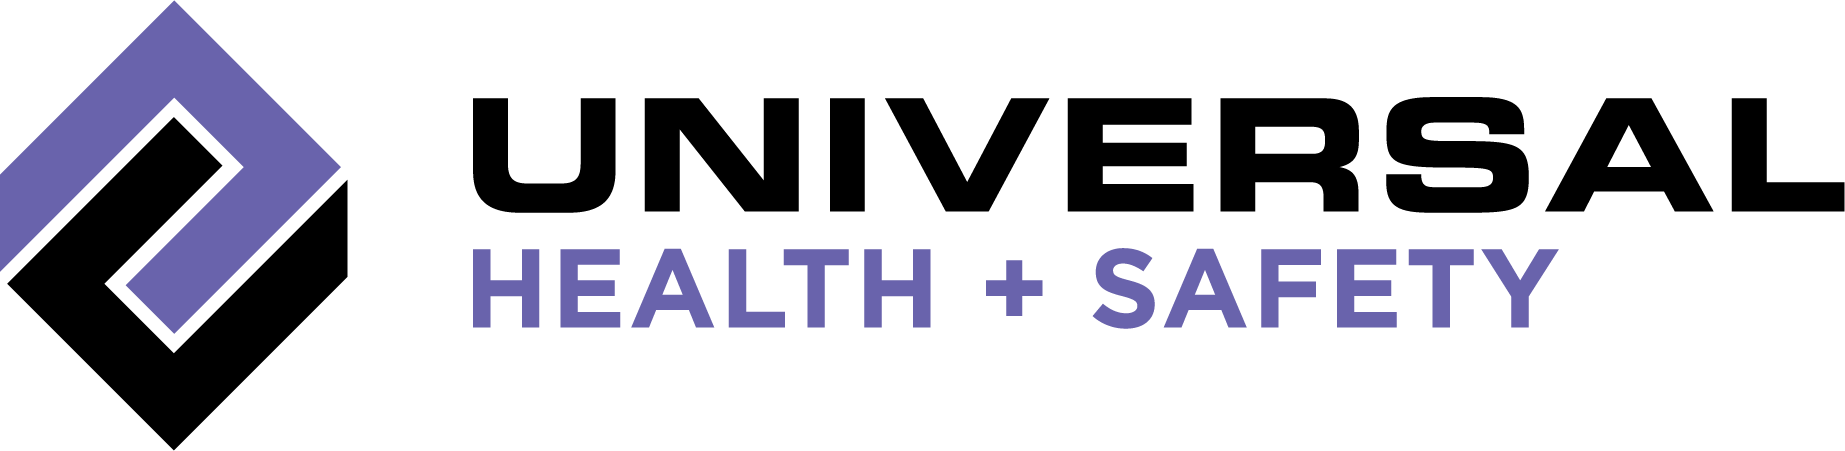 Swapped - Universal Health Safety_4C_CMYK BIGGER.png